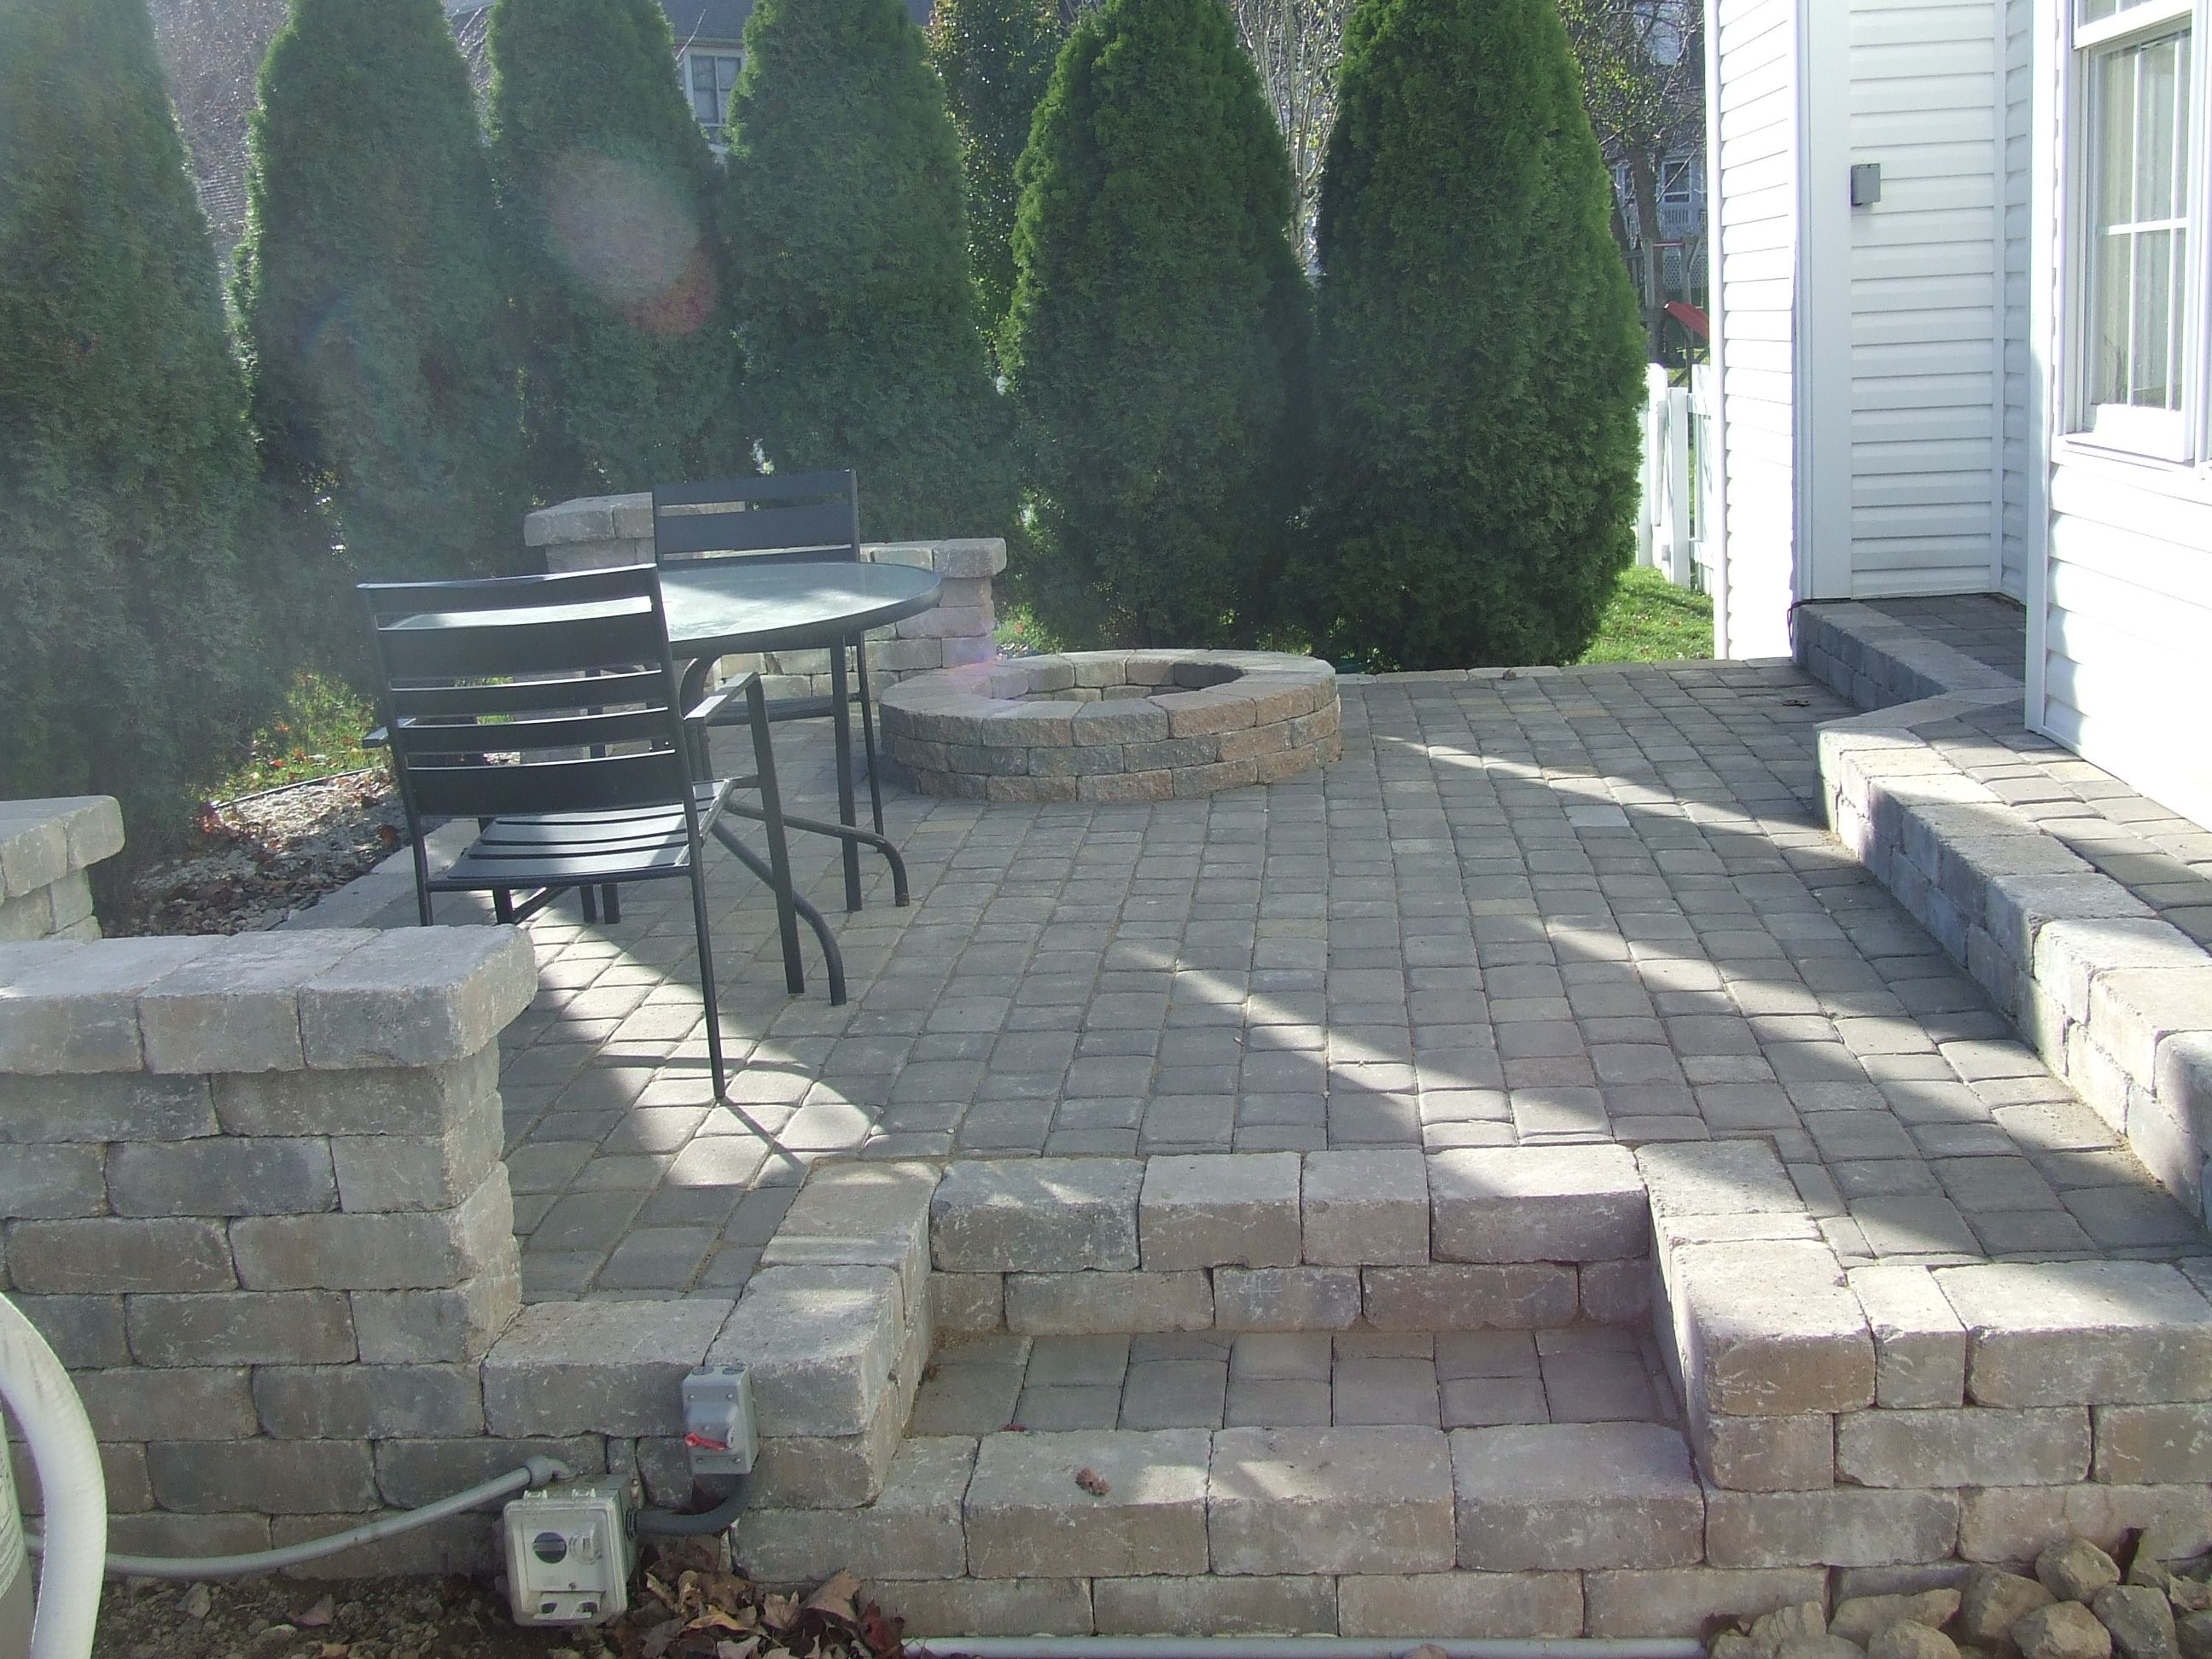 Paver Patio with fire pit. | Outdoor fire pit, Fire pit ... on Paver Patio Designs With Fire Pit id=87021